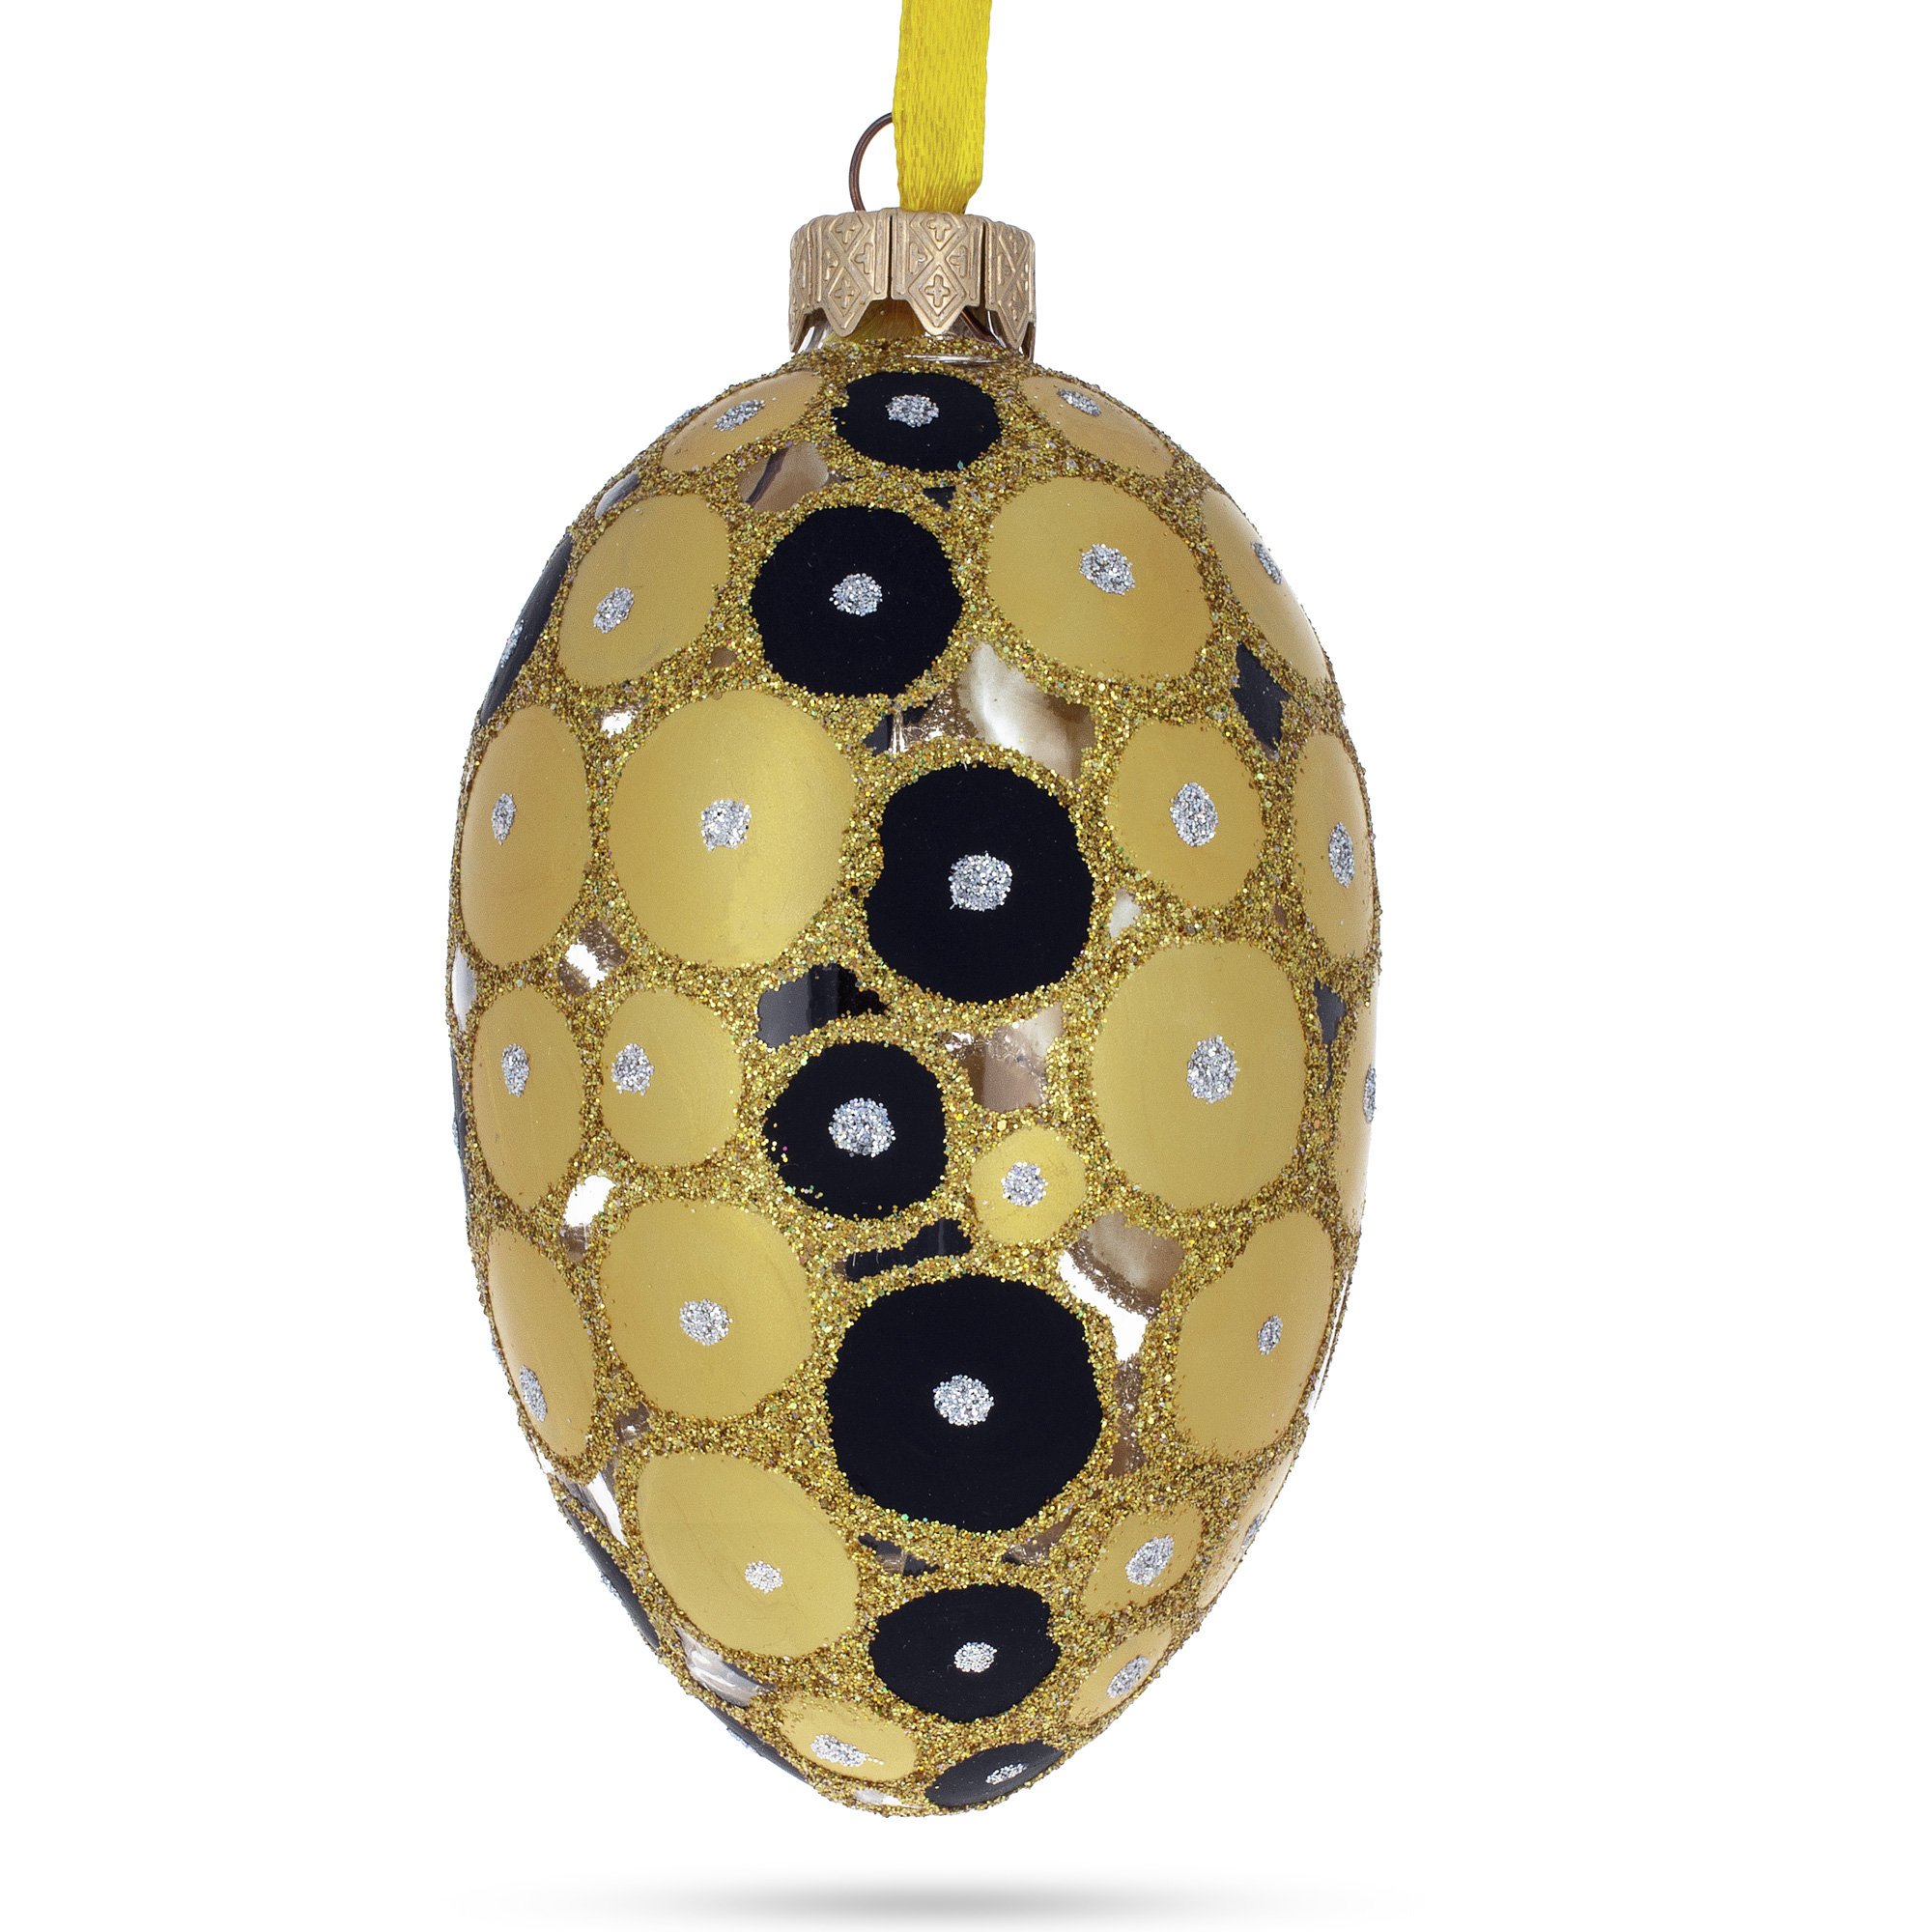 12 HANDMADE CHRISTMAS ORNAMENTS MADE WITH BLING BLACK AND GOLD